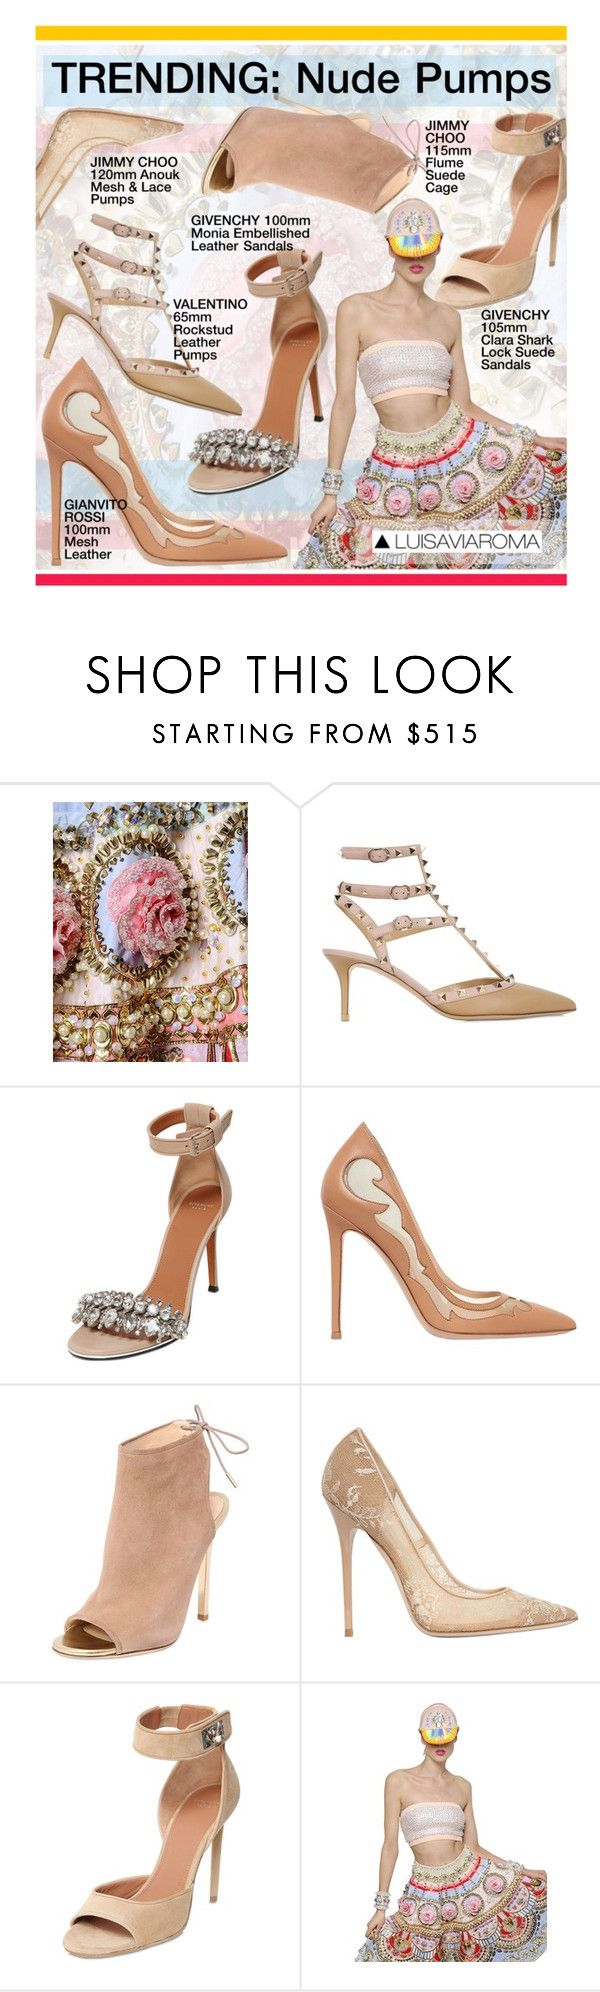 """""""#Trending #NudePumps from @Luisaviaroma"""" by rvgems ❤ liked on Polyvore featuring Manish Arora, Valentino, Givenchy, Gianvito Rossi, Jimmy Choo, women's clothing, women's fashion, women, female and woman"""